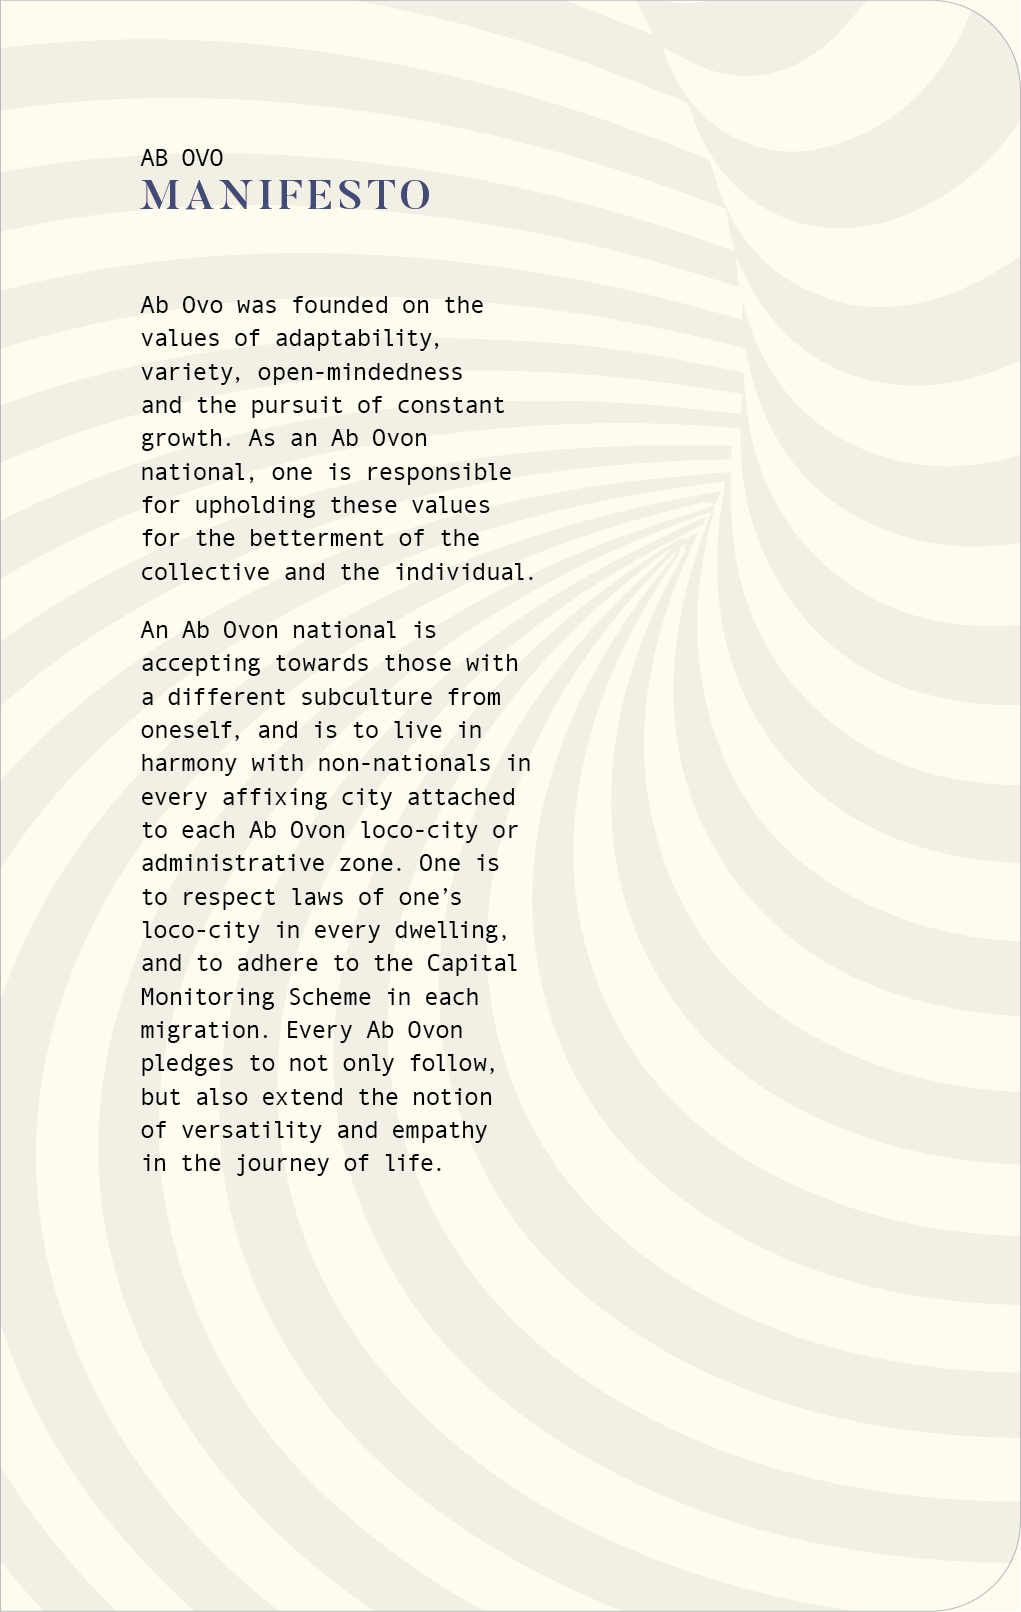 passportPages-03.png